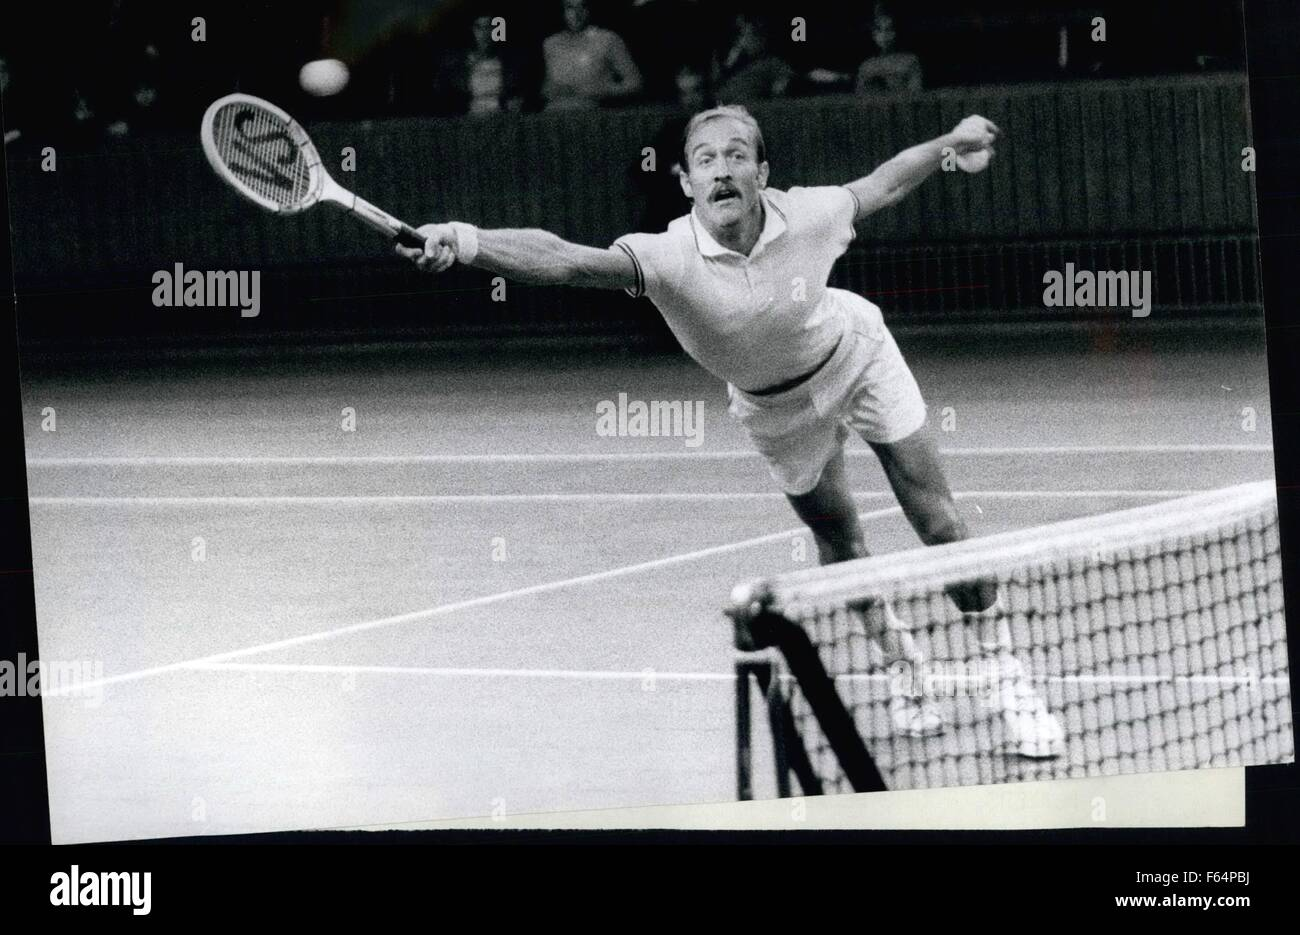 meilleur service 557d6 05292 1980 - Stan Smith seems to be the number one tennis player ...